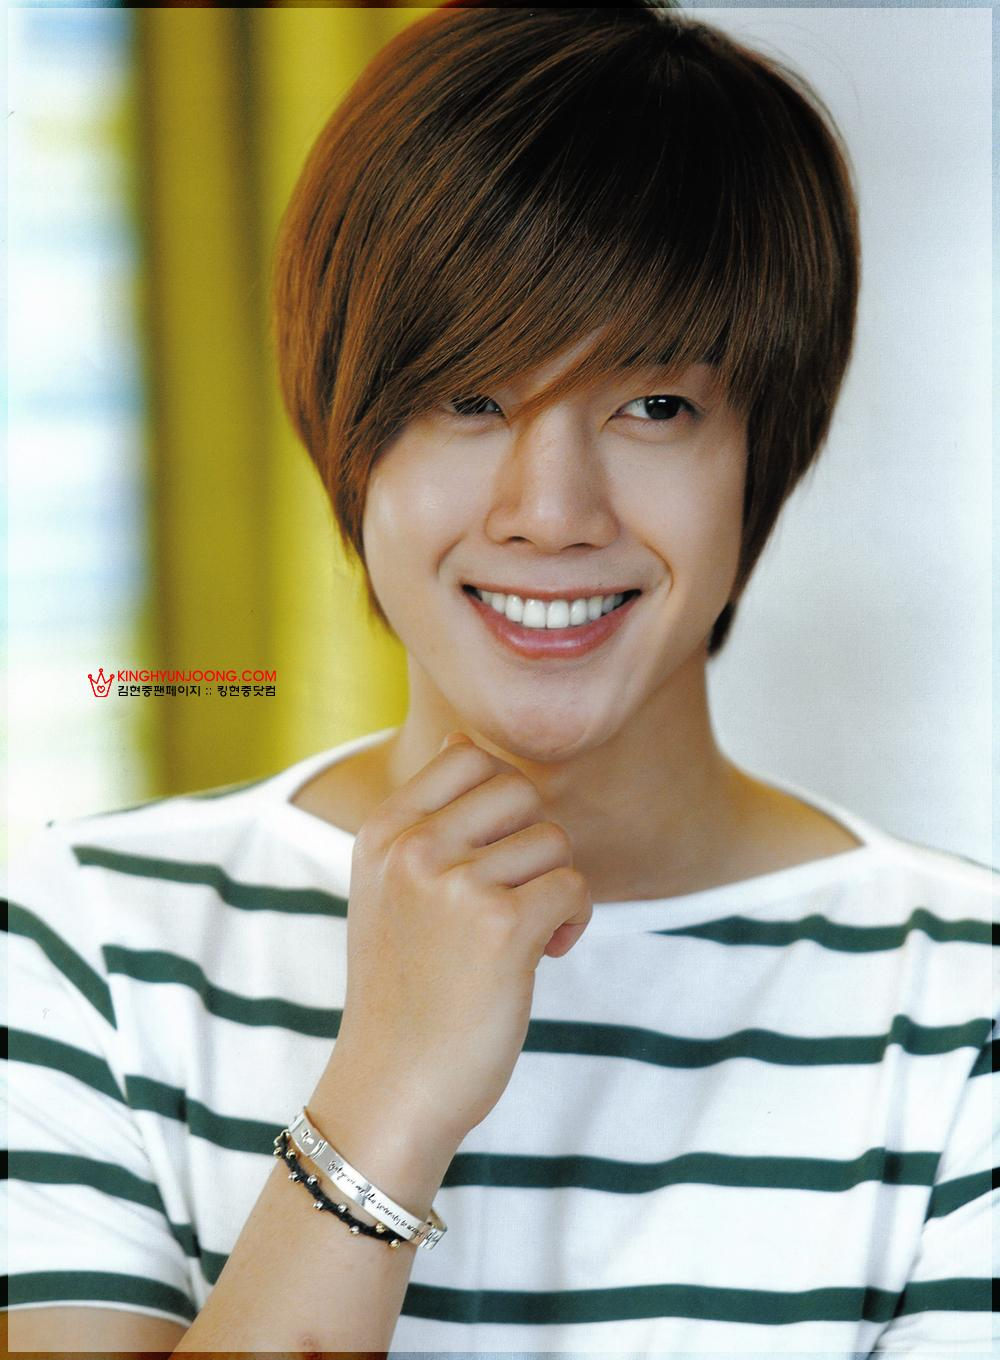 All Images Of Kim Hyun Joong http://langittselalubiru.blogspot.com/2011/08/all-picture-kim-hyun-joong.html